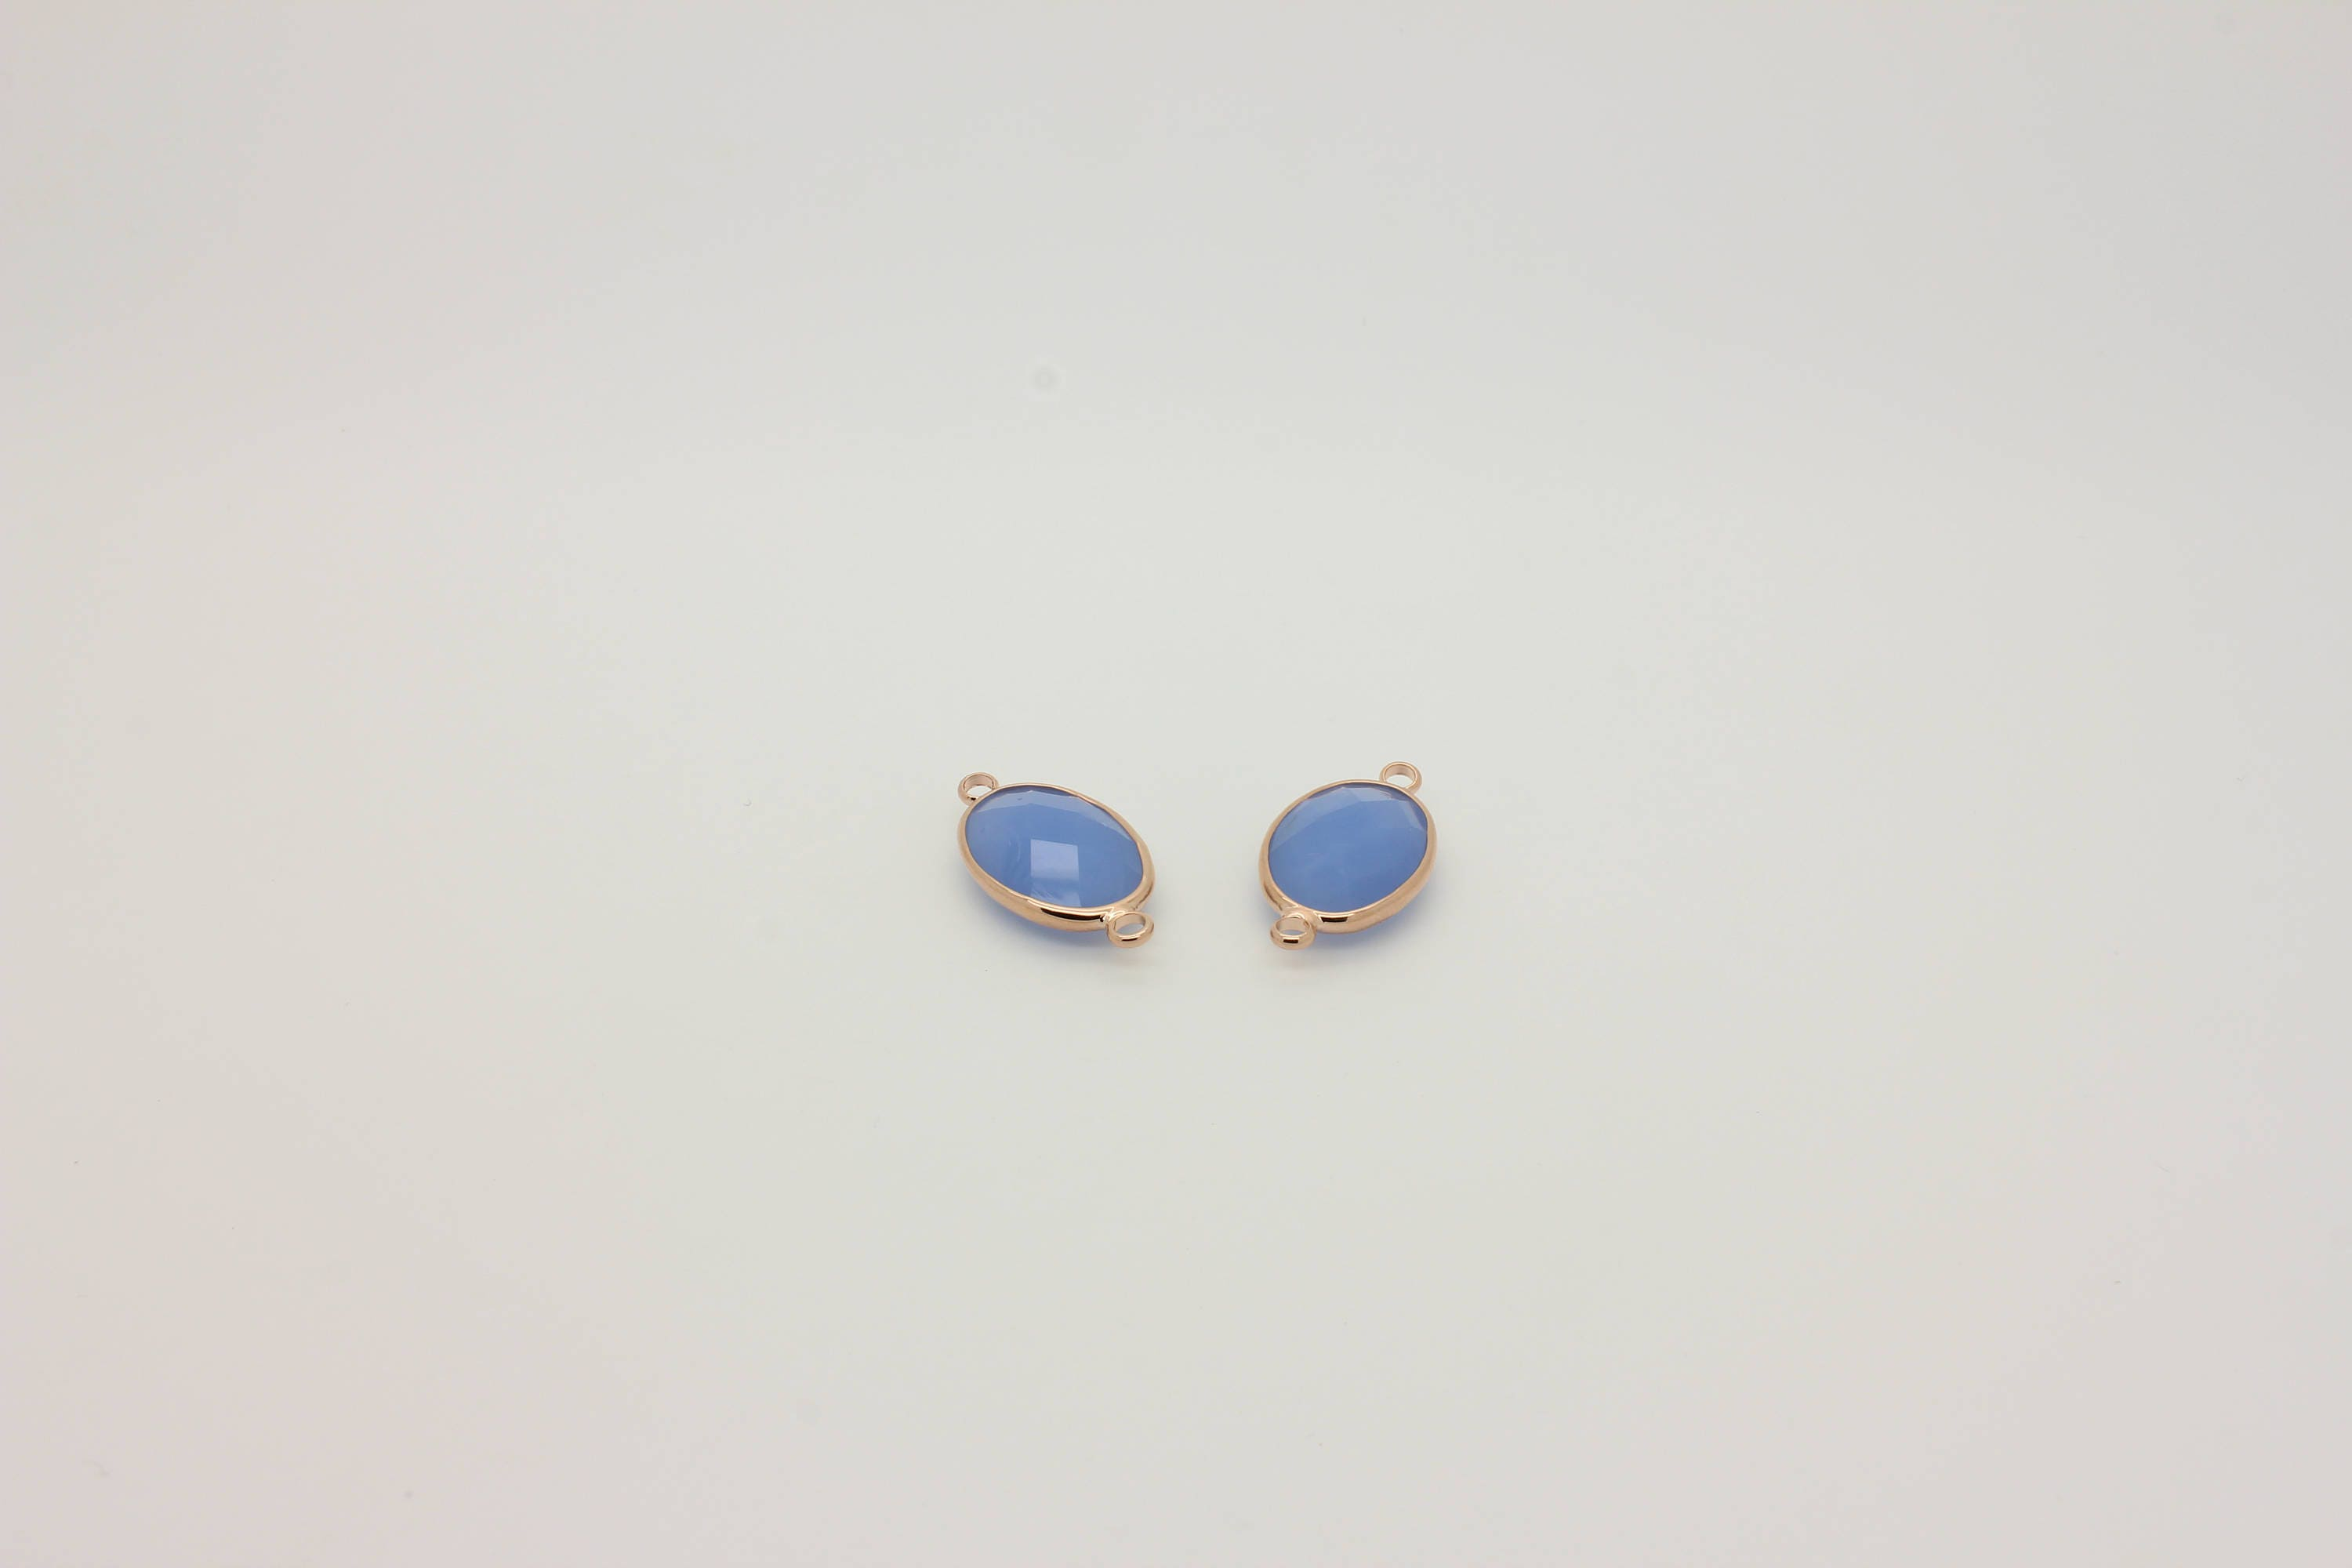 Oval Faceted Glass Connector 1 Pcs Connector Charm 22L3-05R-11C Matt Light Blue Glass Connector Real Rose Gold Plated Framed Connector